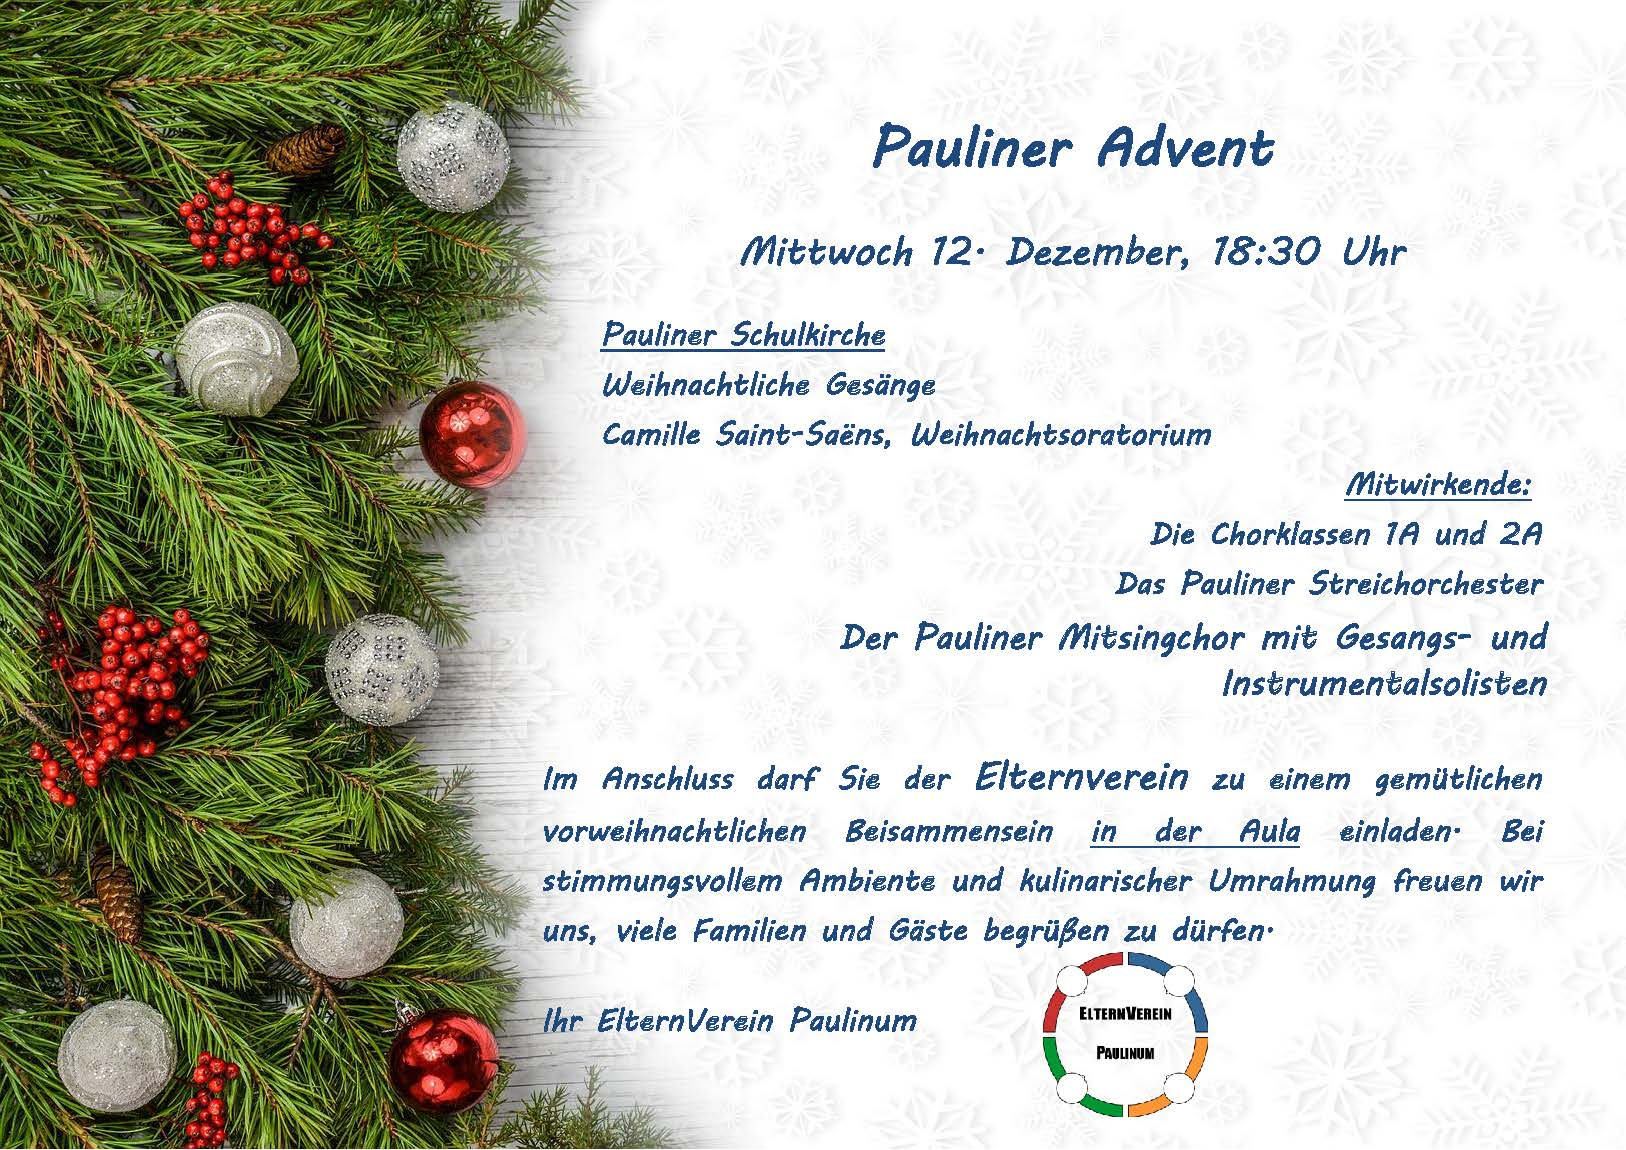 Einladung Pauliner Advent 2018 web